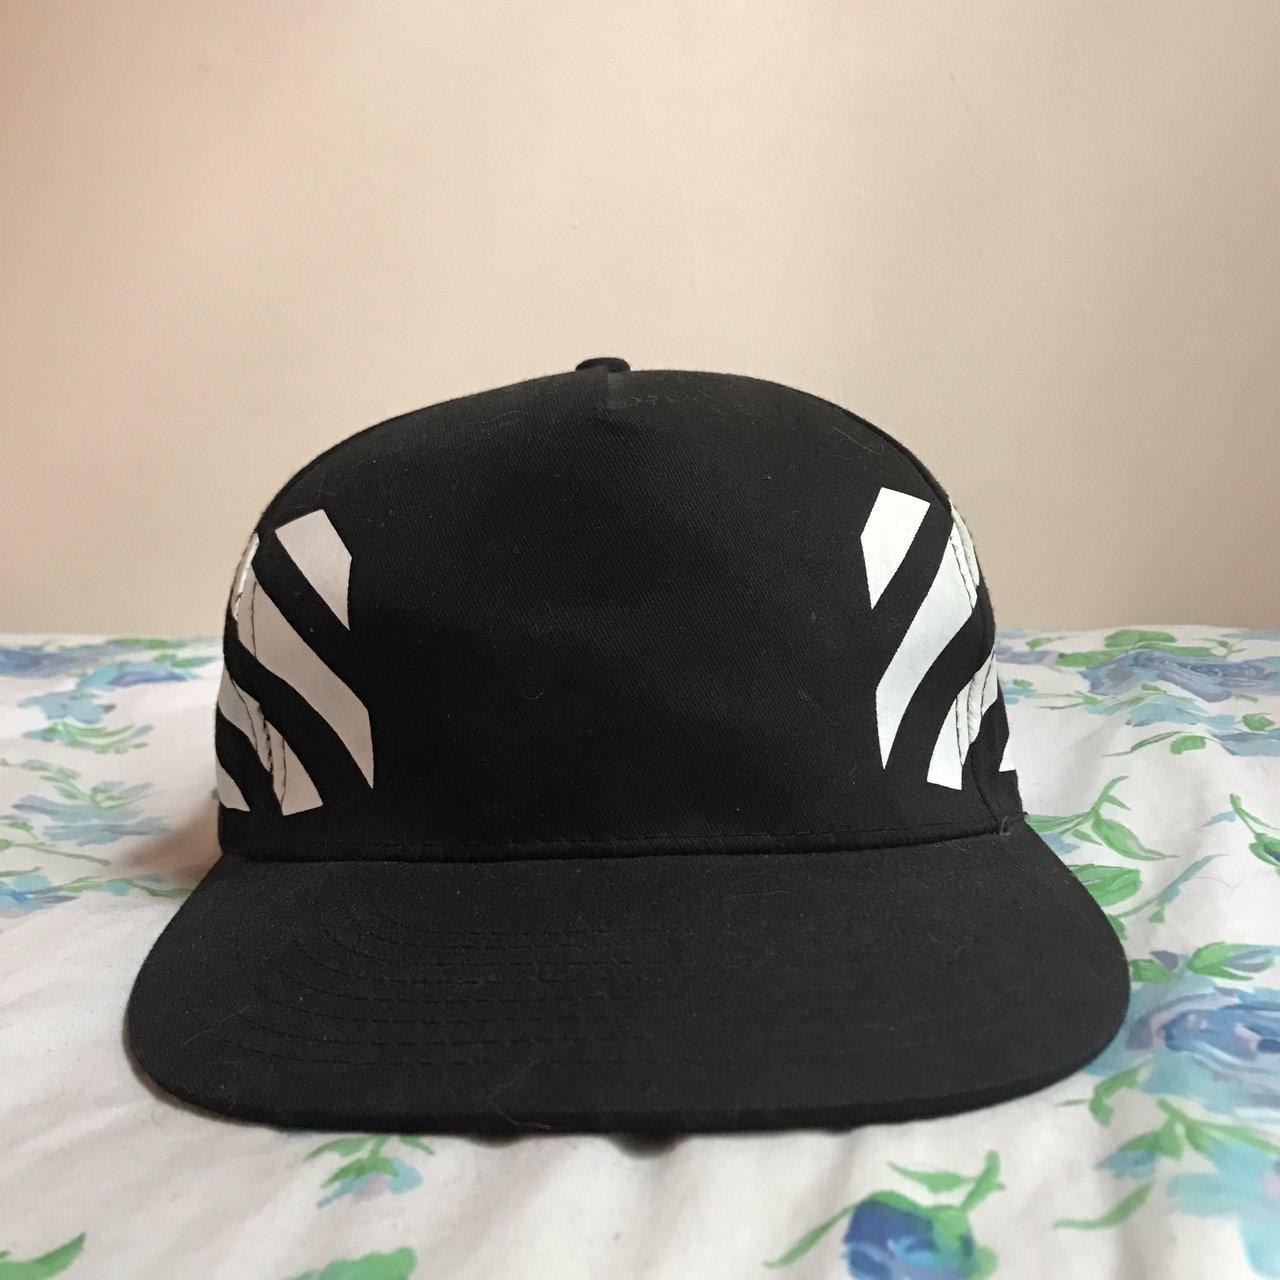 Off-White SnapBack. Wore this one time f62a46b9752